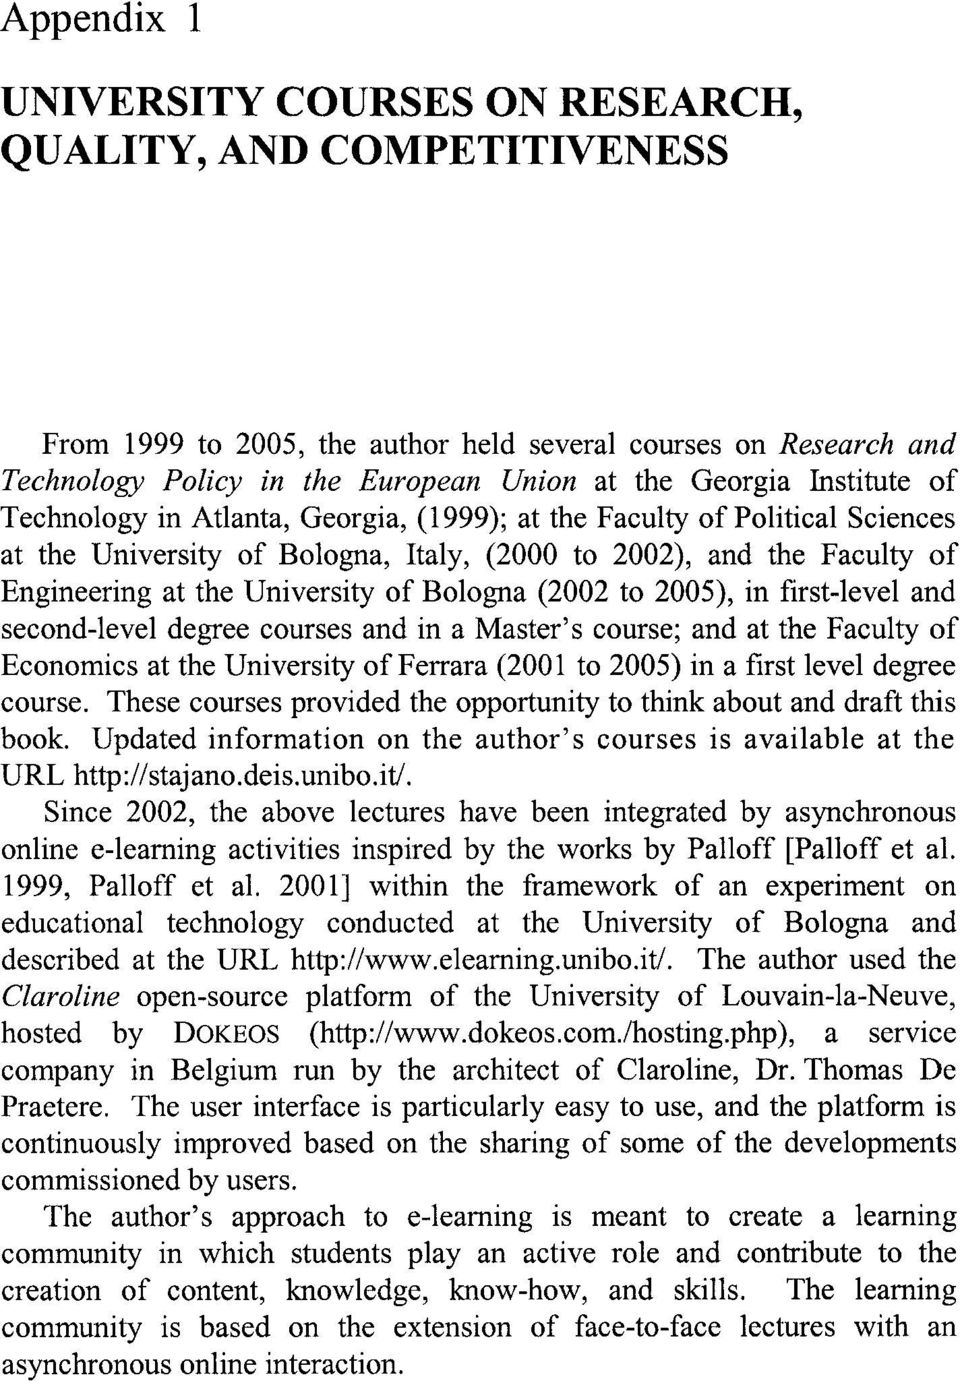 Bologna (2002 to 2005), in first-level and second-level degree courses and in a Master's course; and at the Faculty of Economics at the University of Ferrara (2001 to 2005) in a first level degree